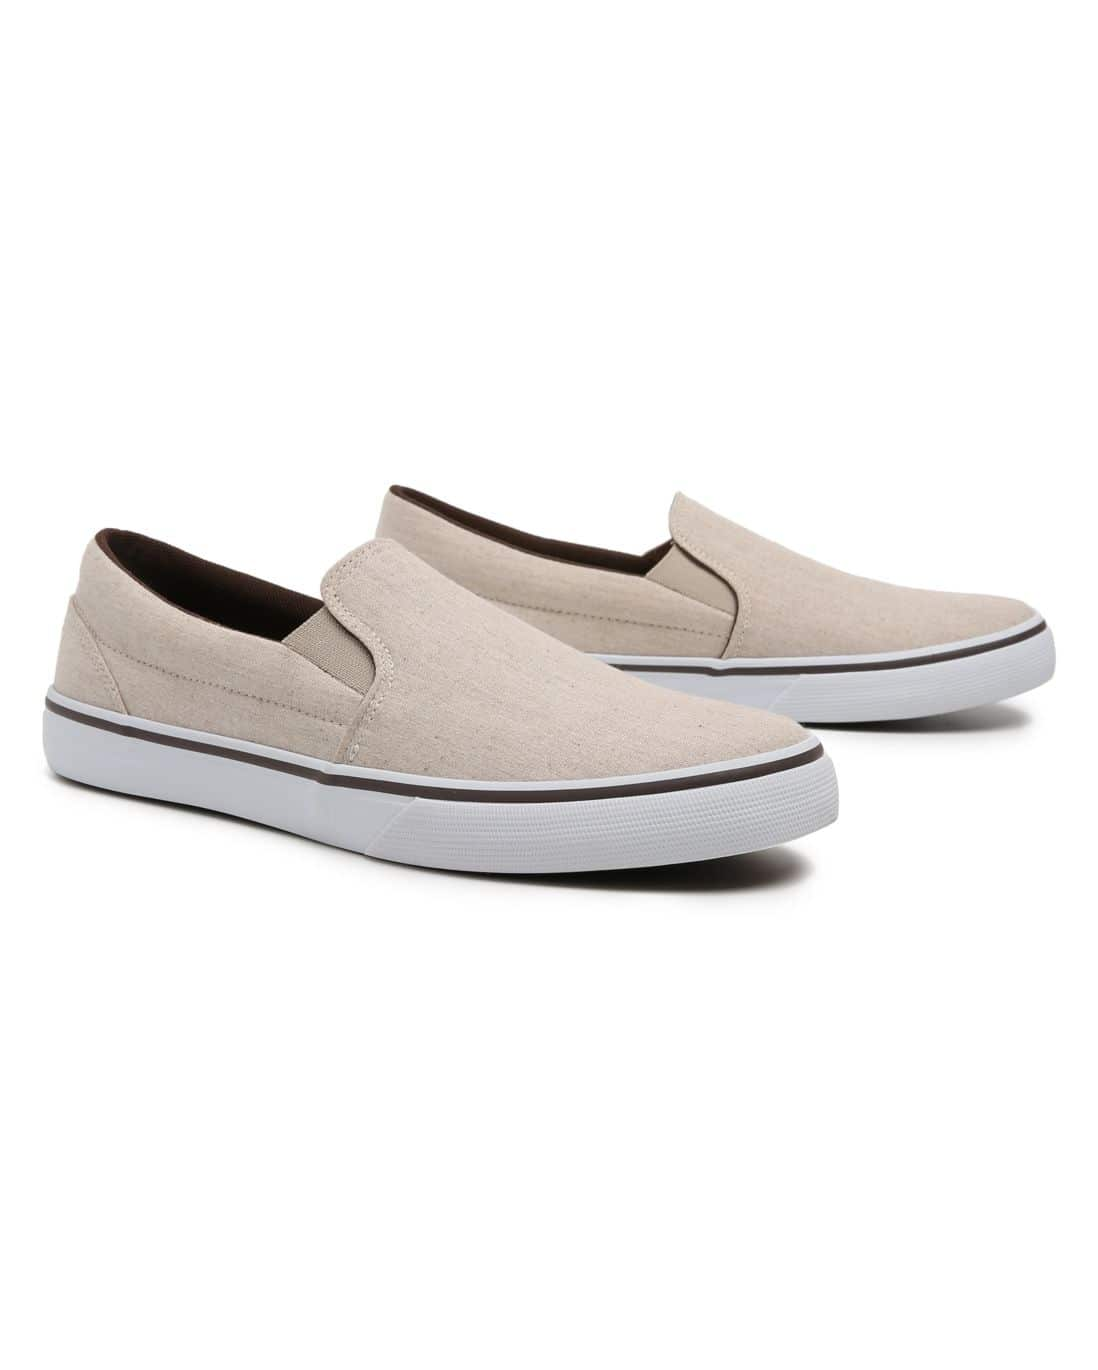 Tênis Slip On RCHLO Man - Bege Claro